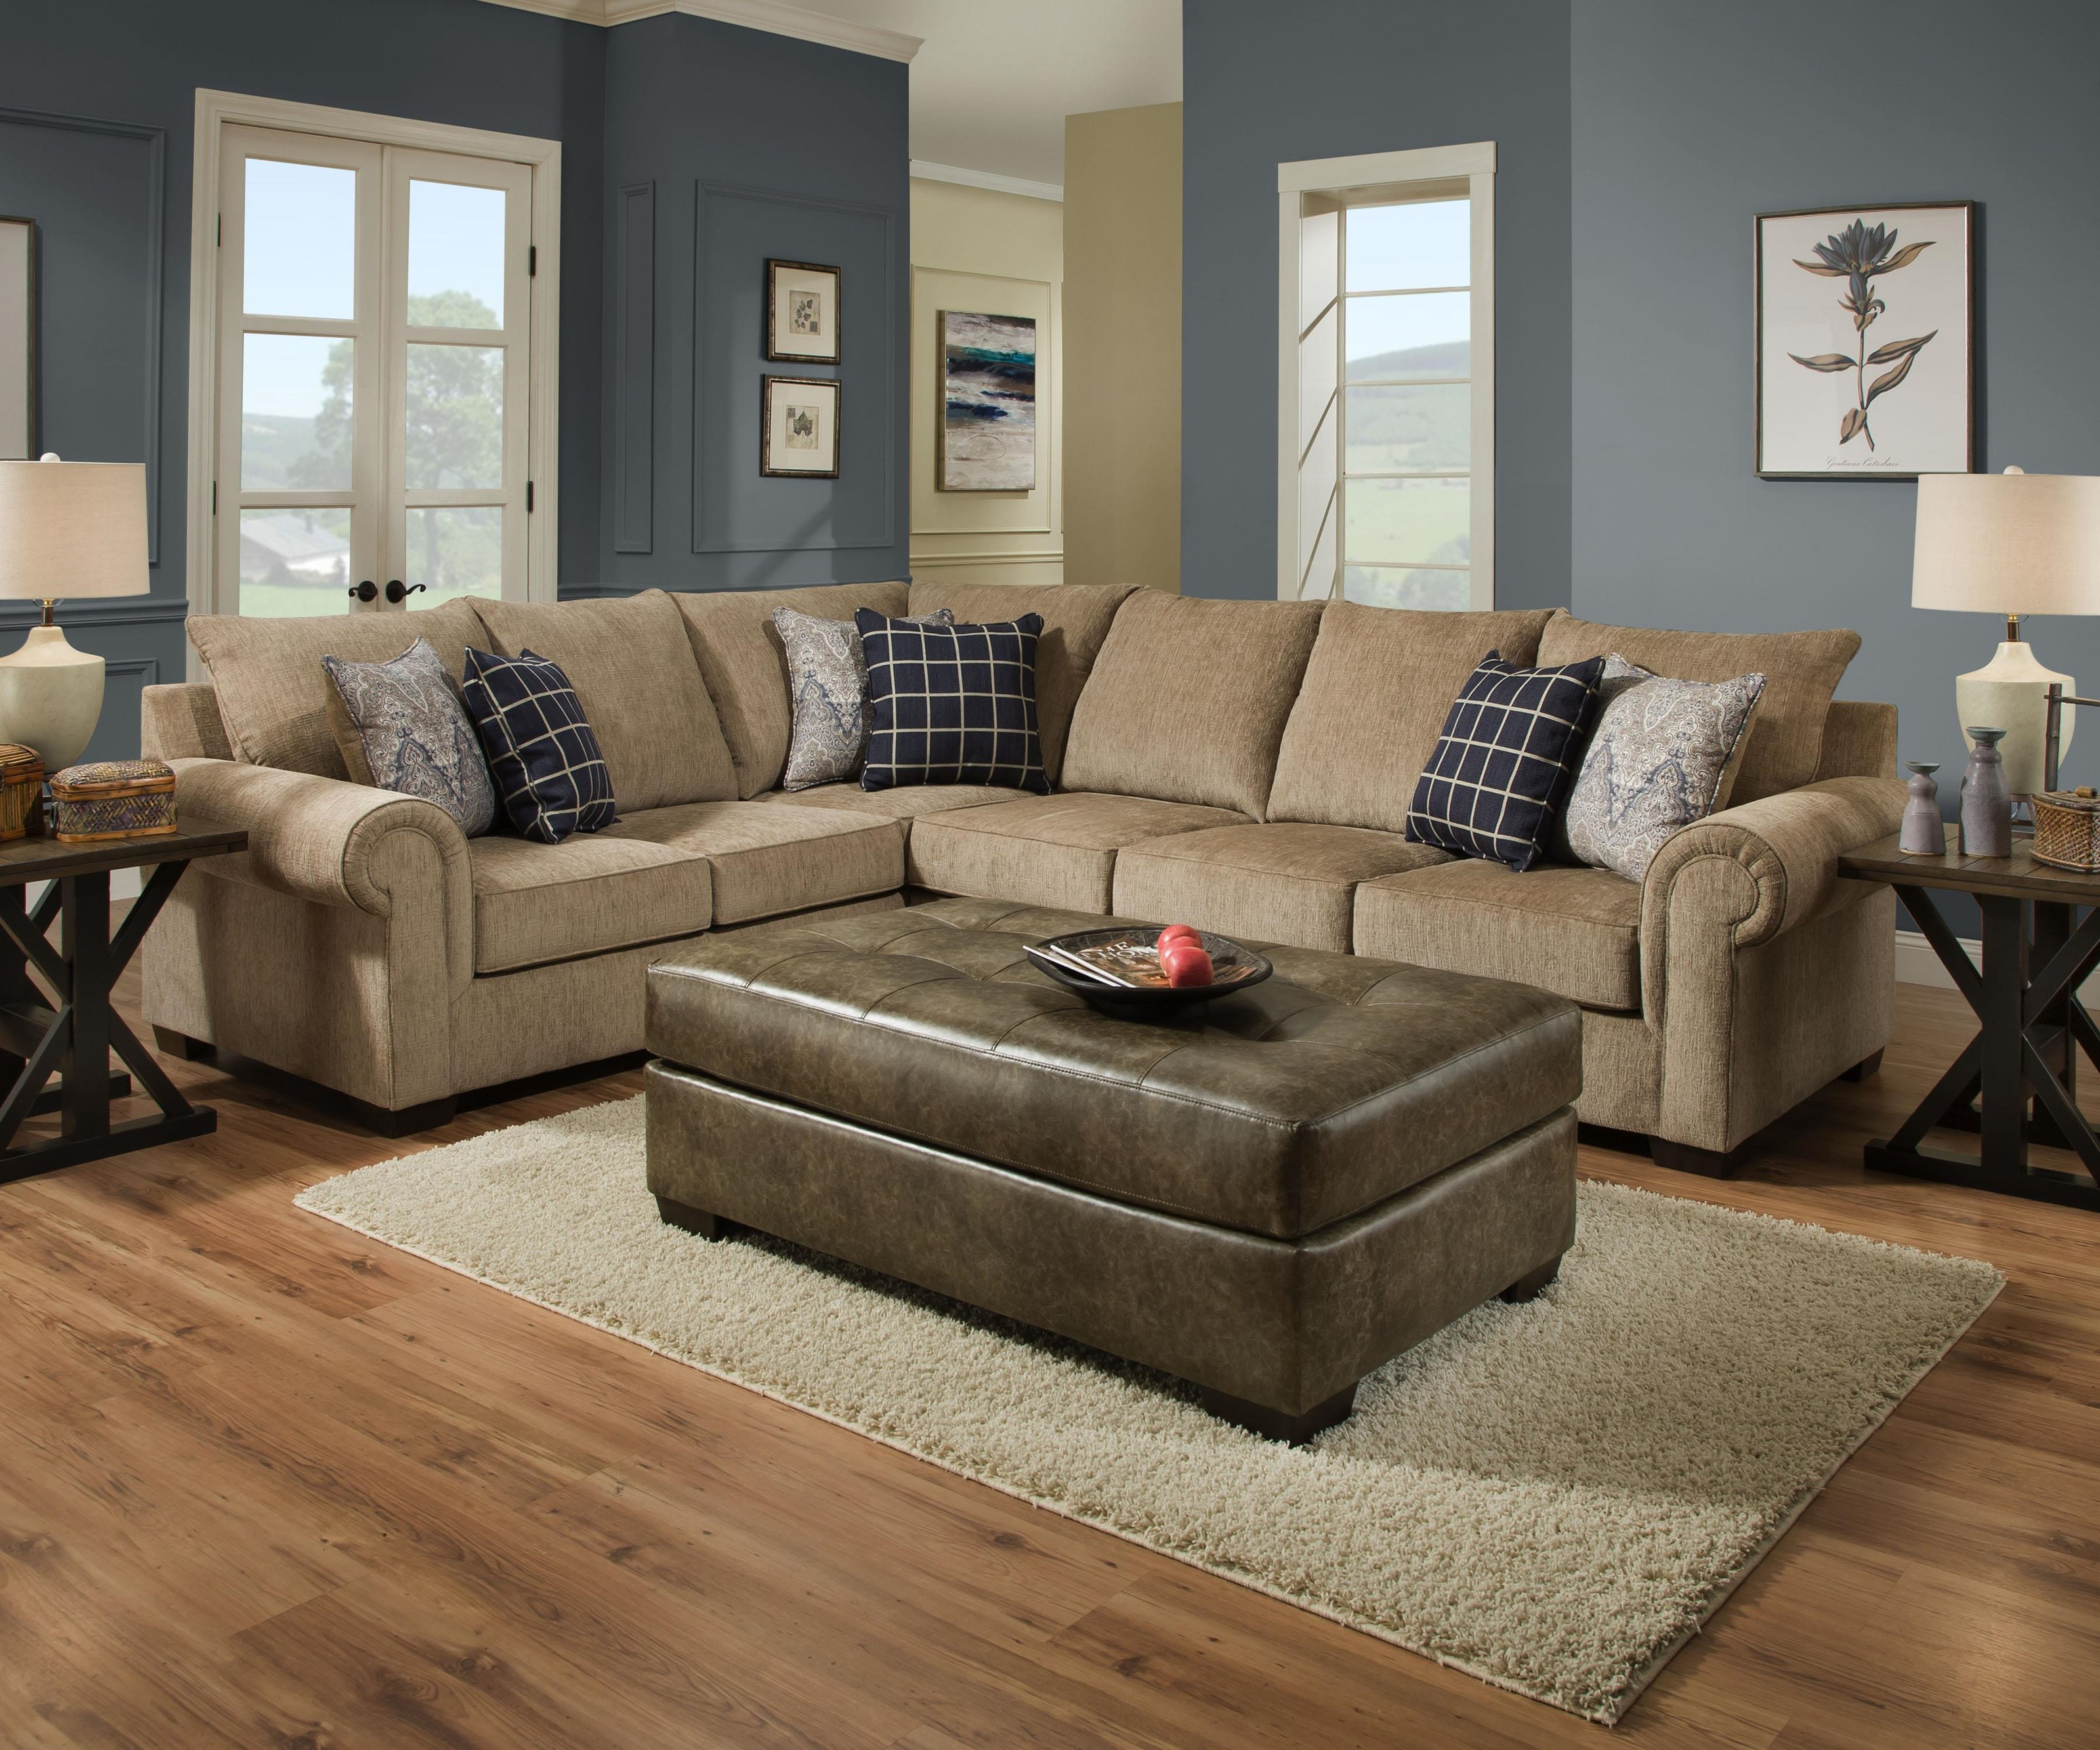 Simmons Upholstery 7592BR 2 Piece Sectional - Item Number: 7592BRLAF-RAF